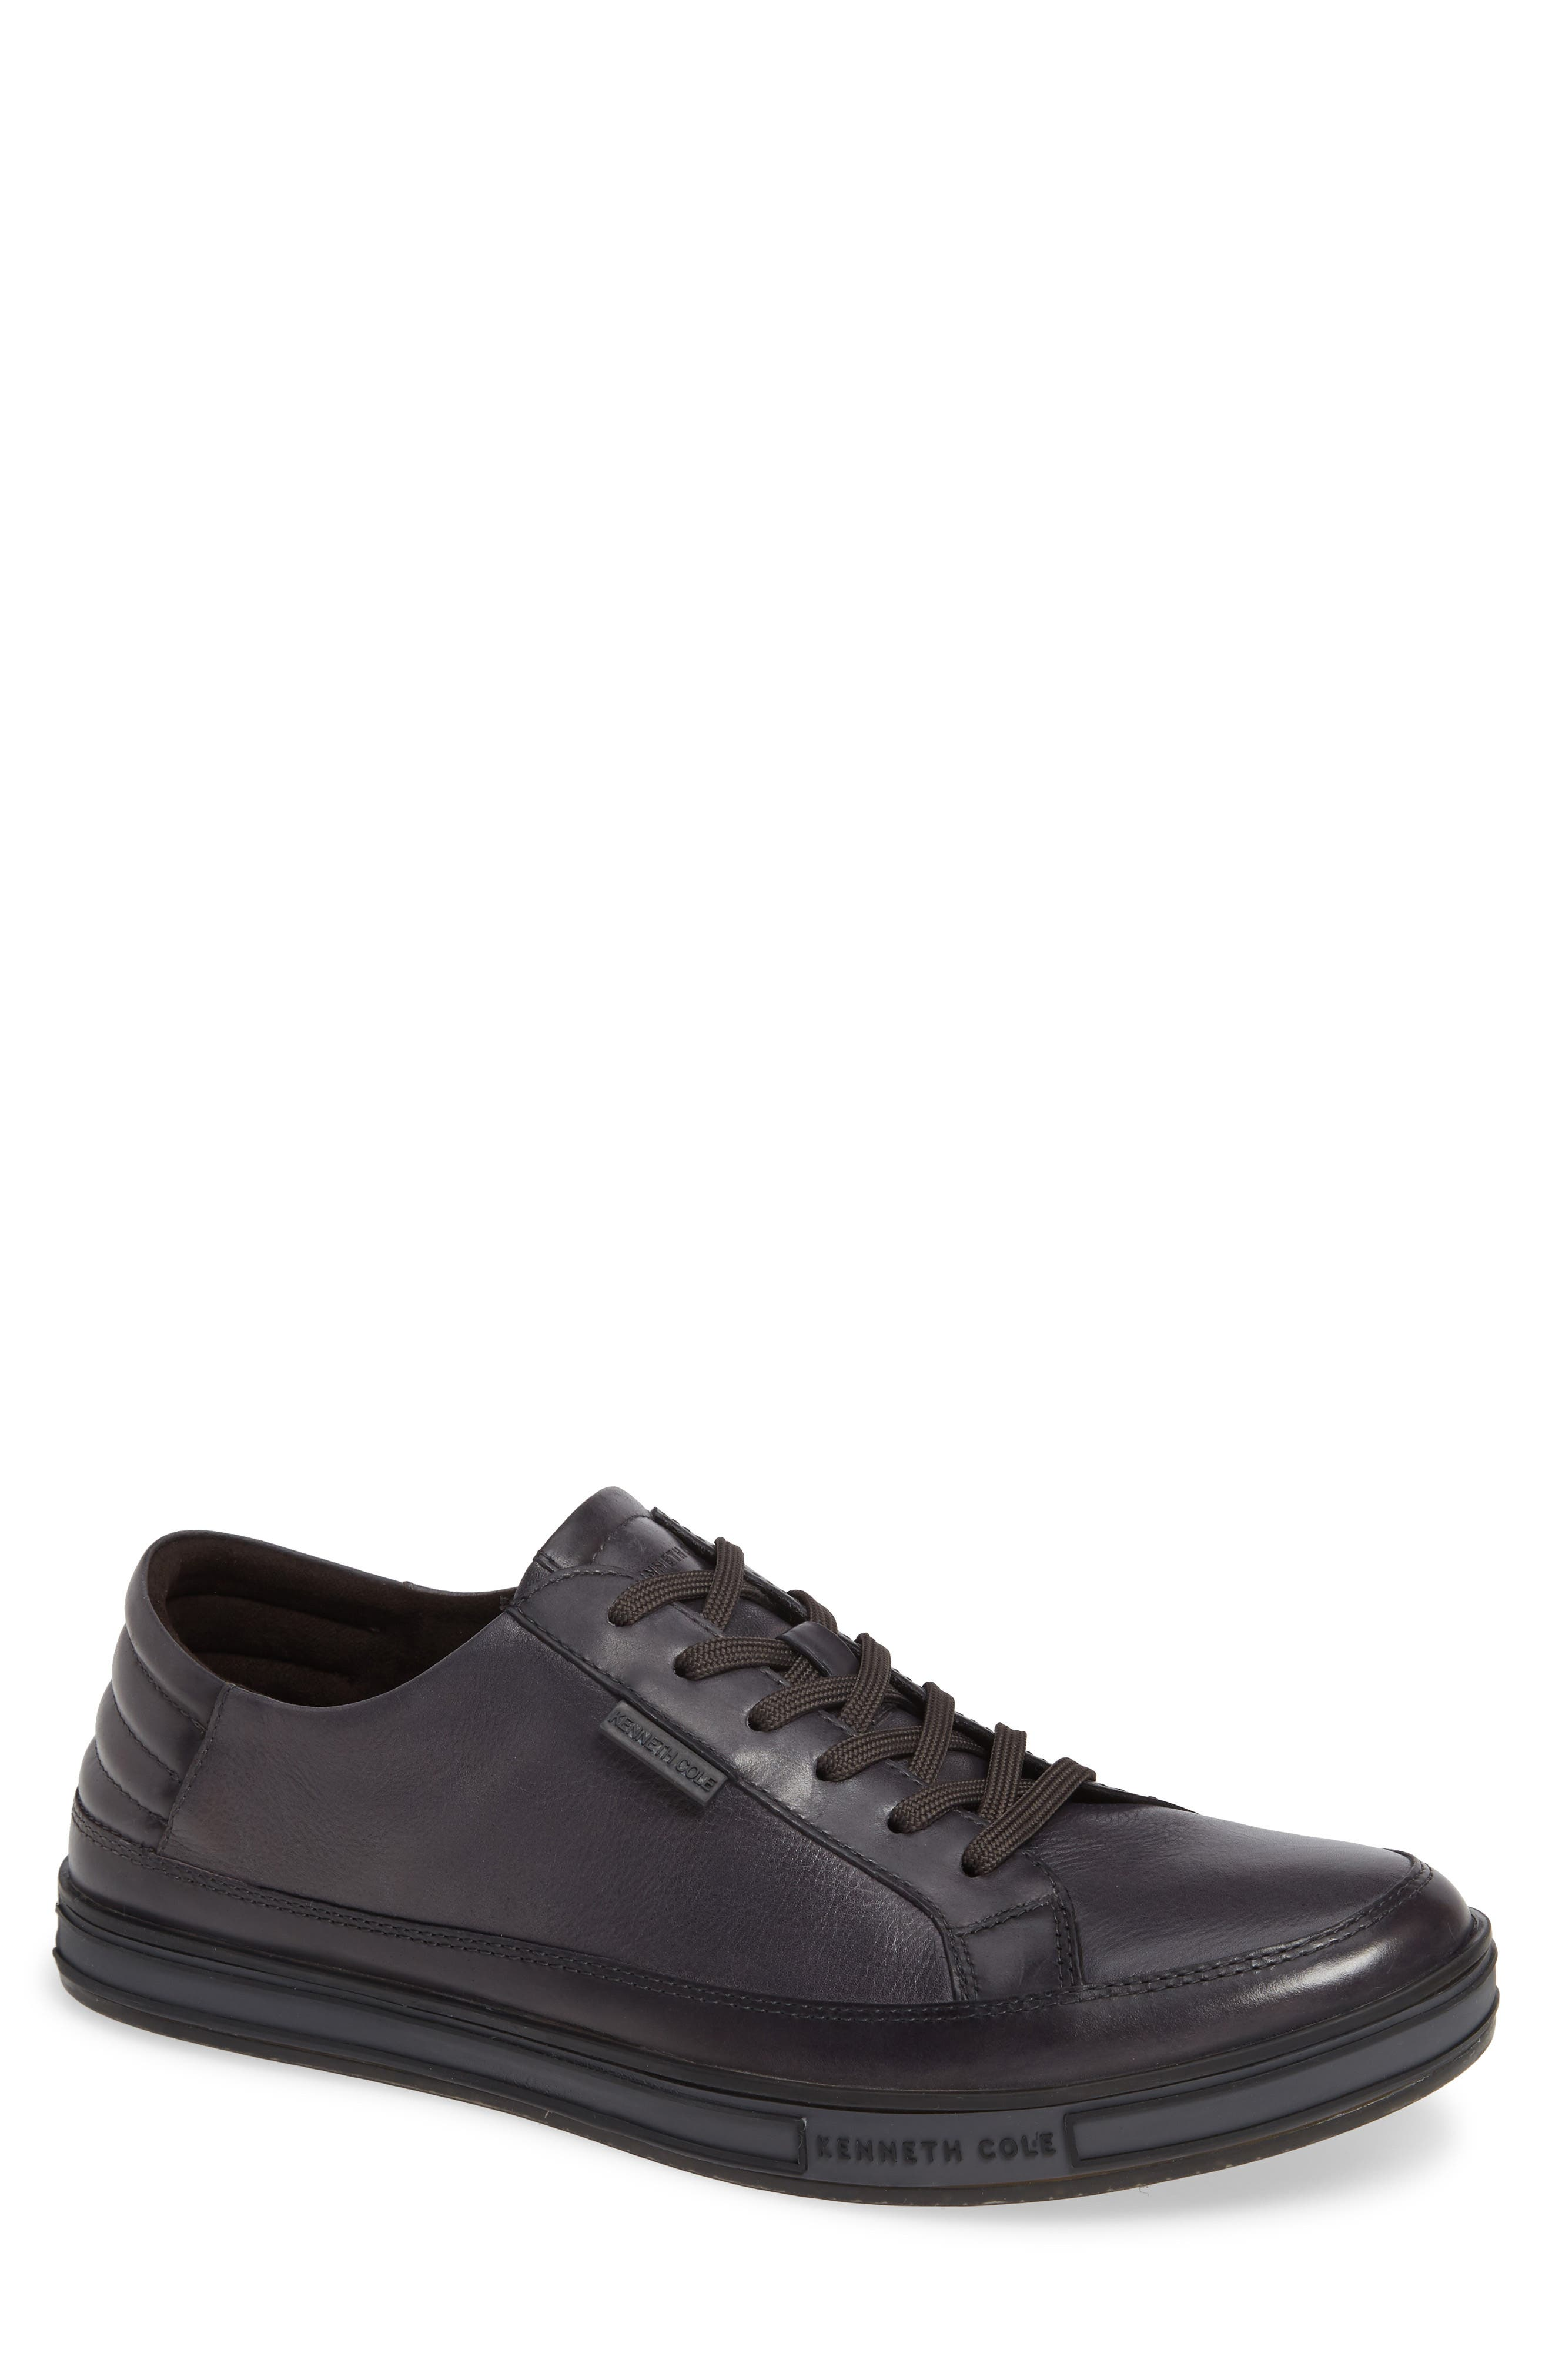 Kenneth Cole New York Brand Stand Low Top Sneaker- Grey